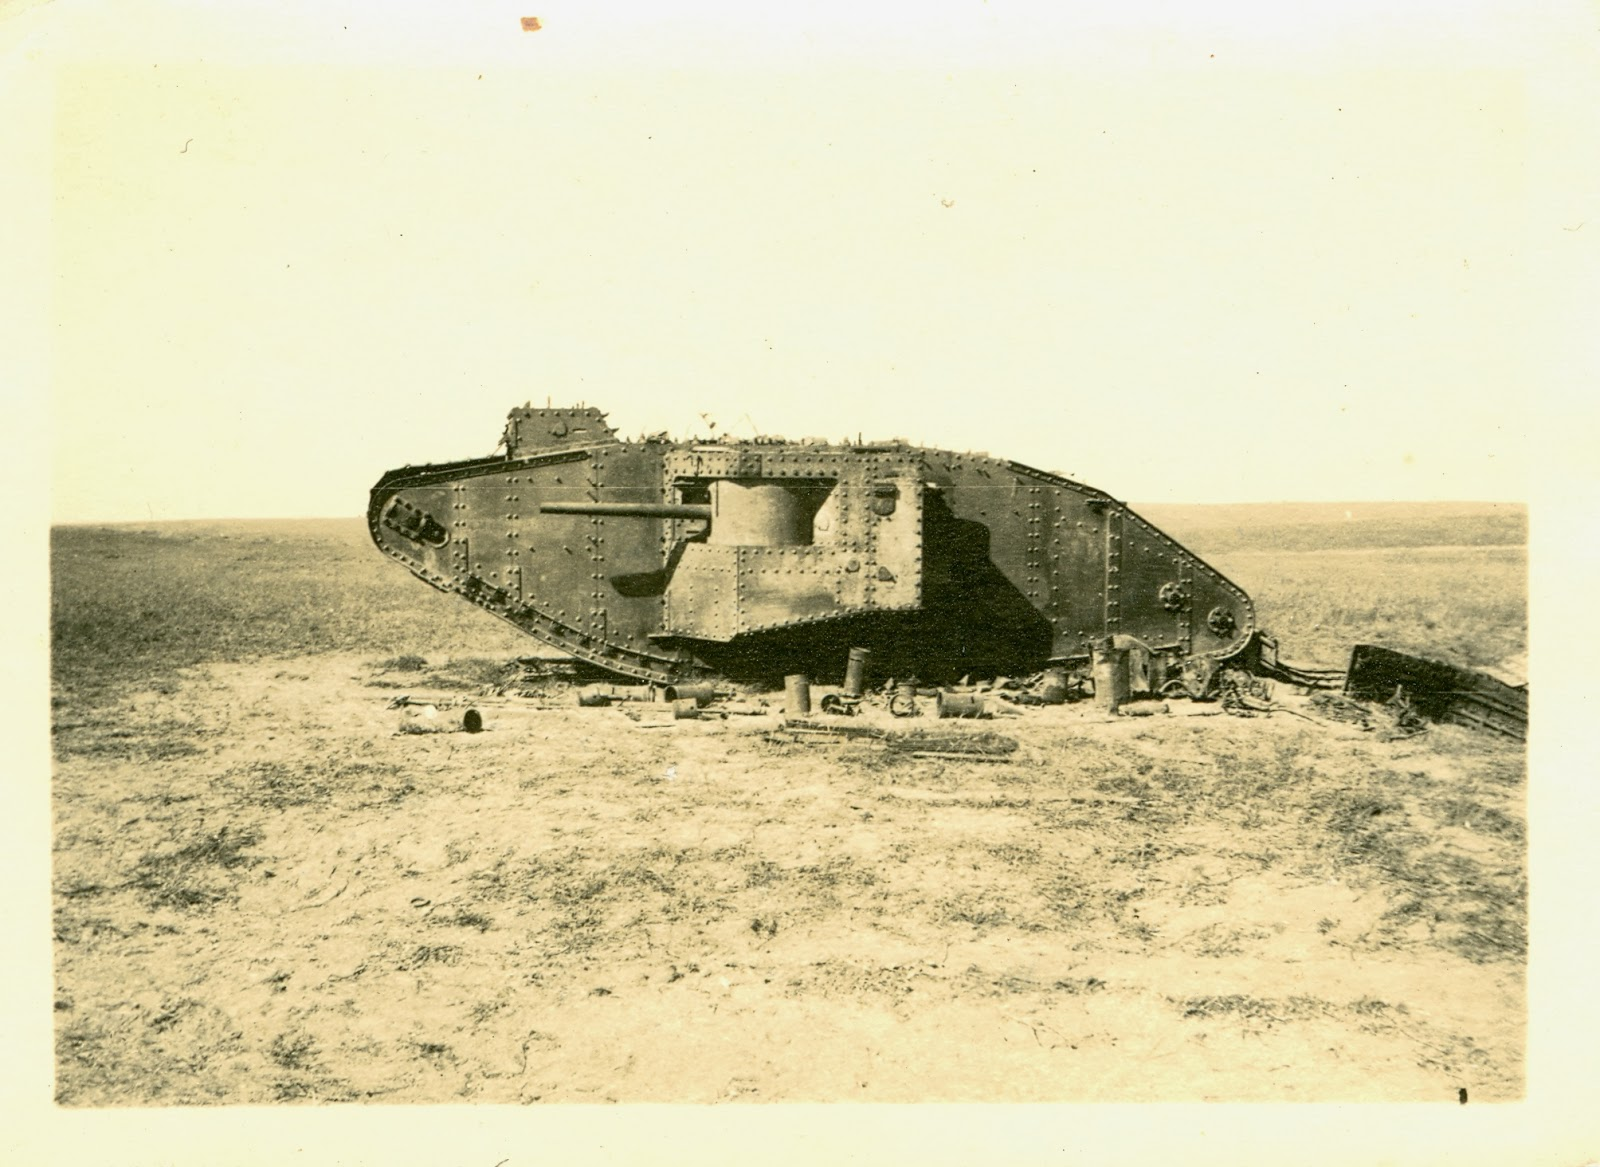 Disabled tank at 3rd Gaza